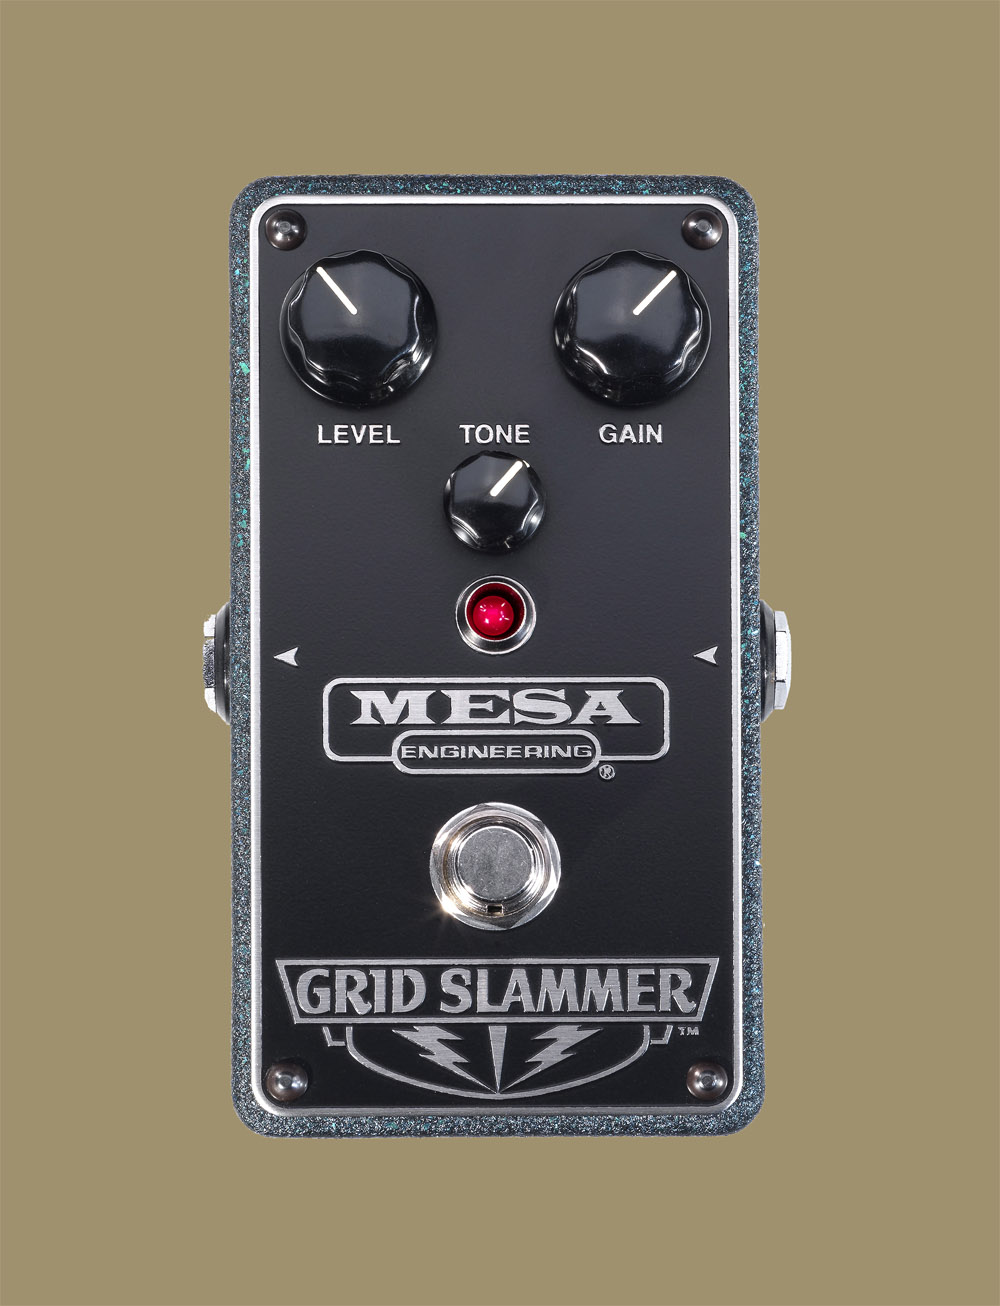 The Mesa Grid Slammer Overdrive Pedal